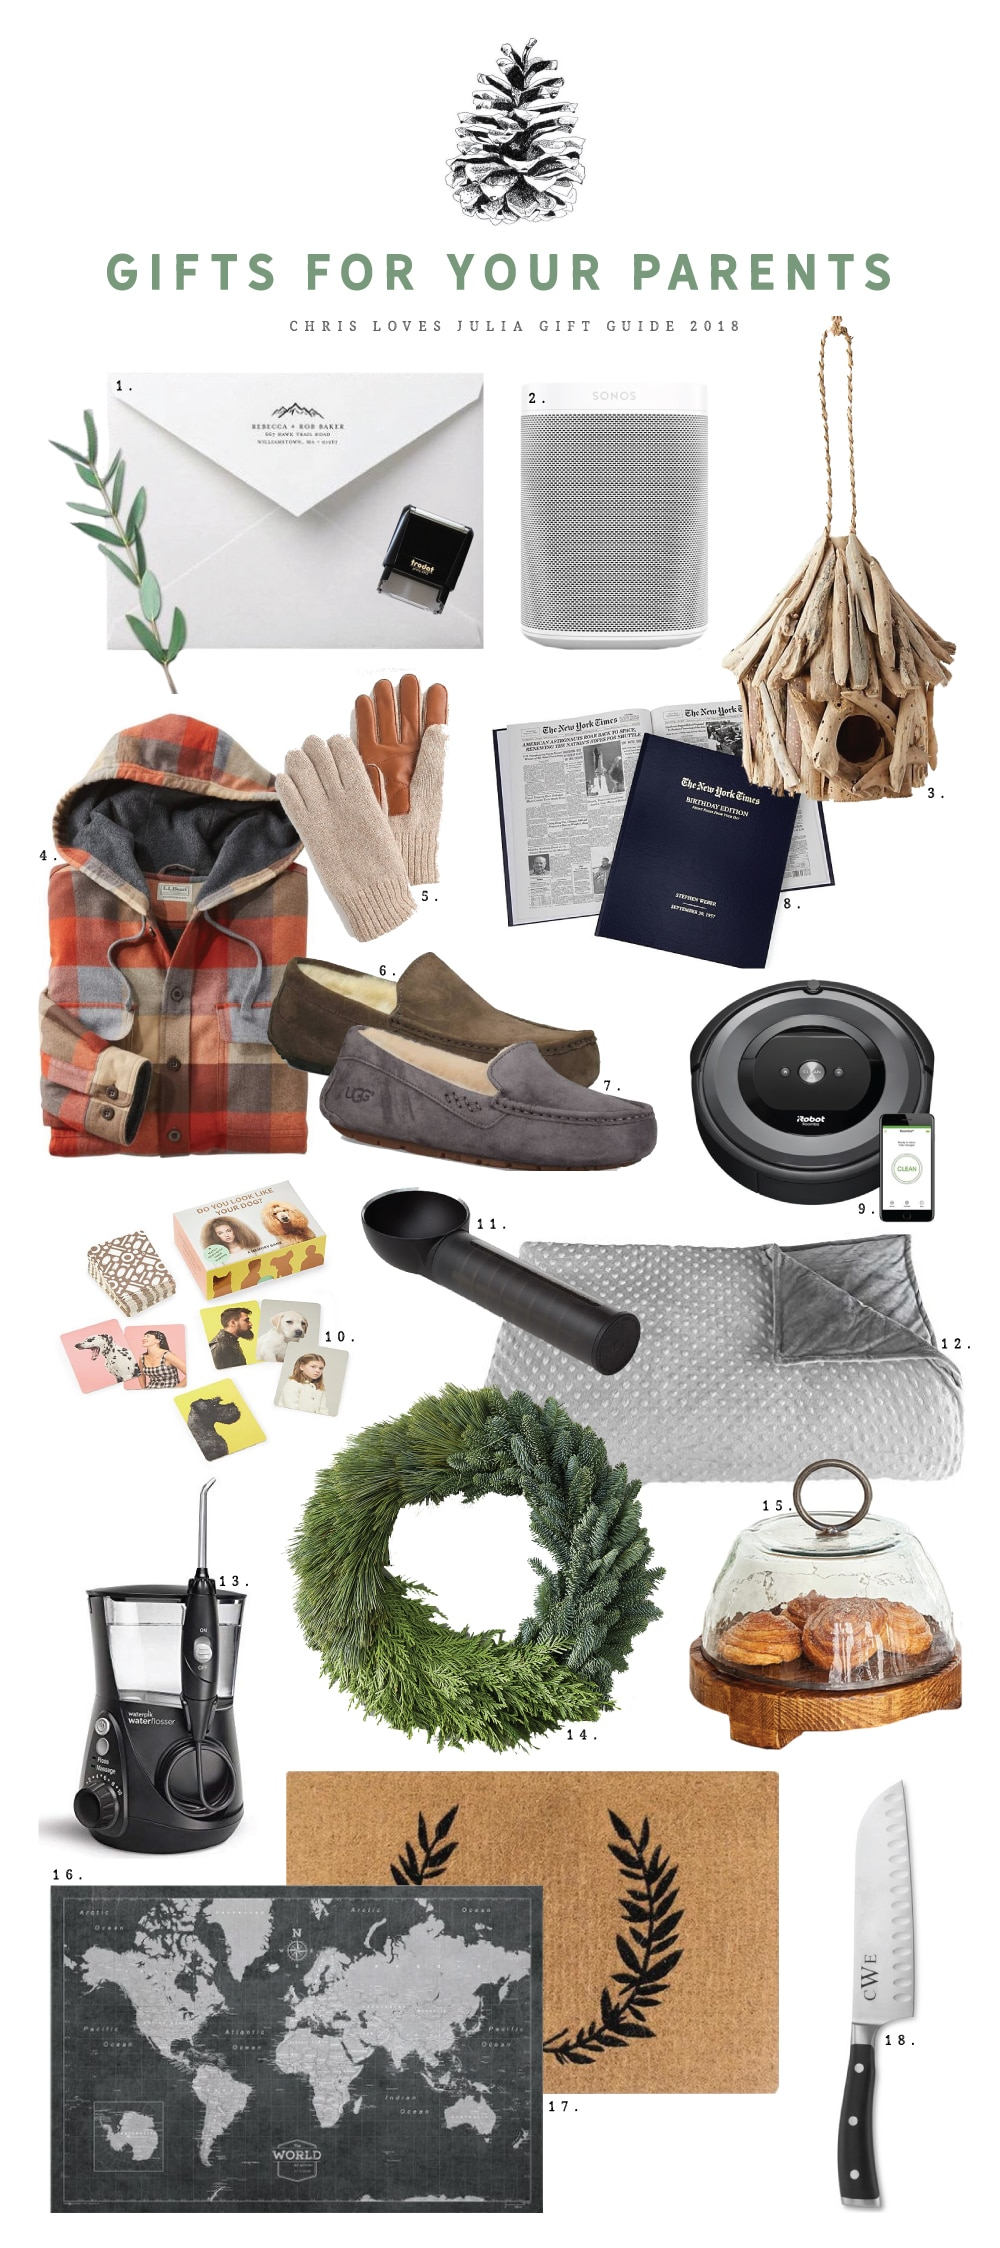 Gifts For Your Parents In Laws Grandparents Clj Gift Guide 2018 Chris Loves Julia